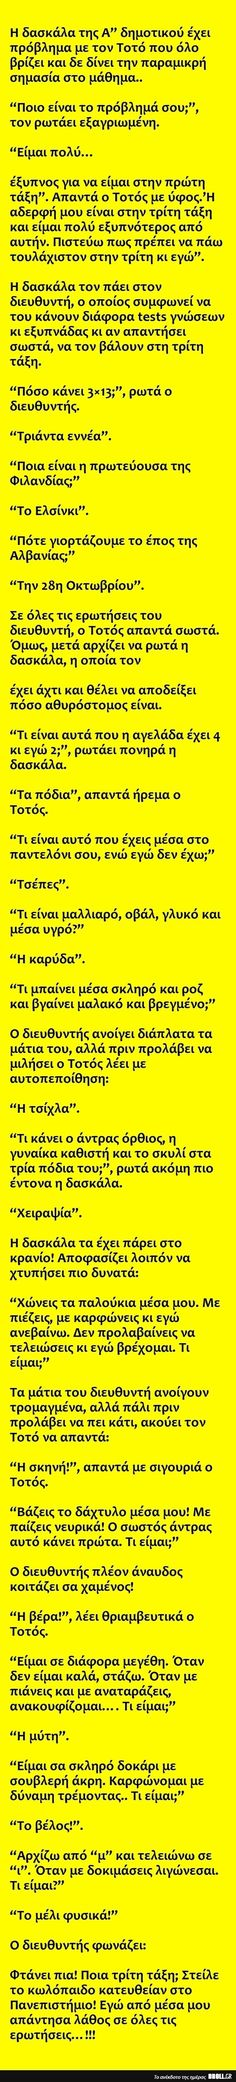 anekdoto-top-totos-1 Jokes Quotes, Qoutes, Life Quotes, Memes, Funny Cartoons, Funny Jokes, Funny Images, Funny Pictures, Funny Greek Quotes